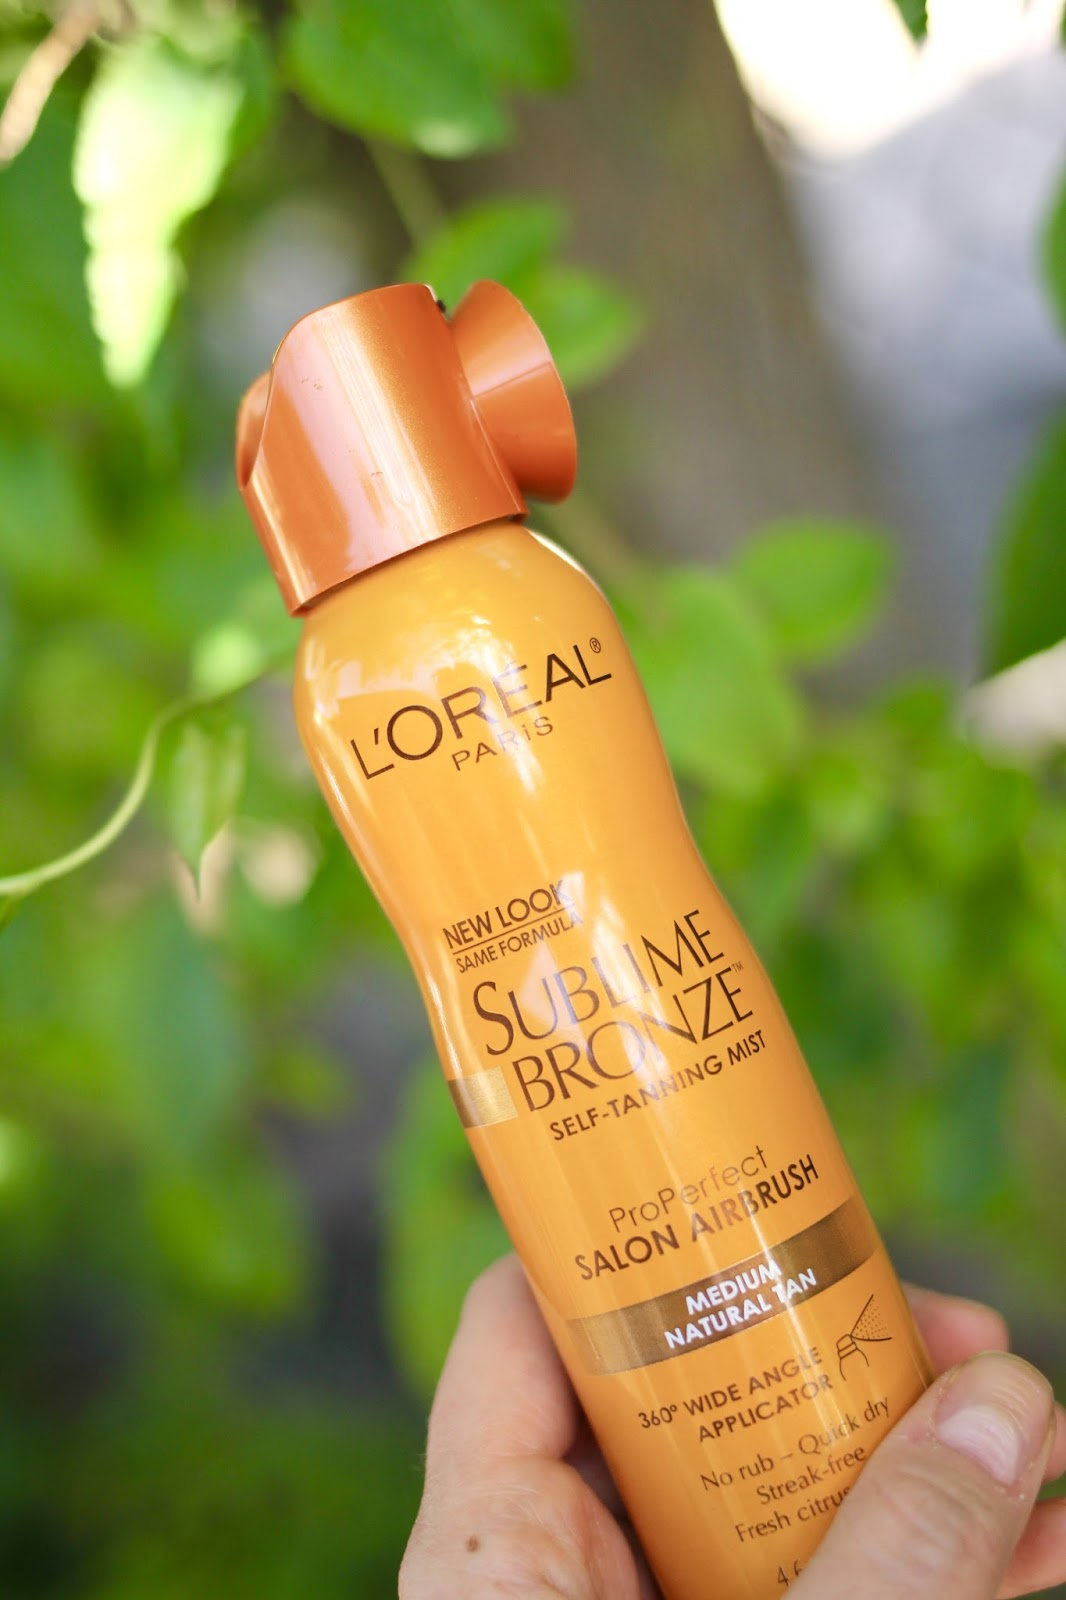 loreal self tanning mist review, easy self tanner